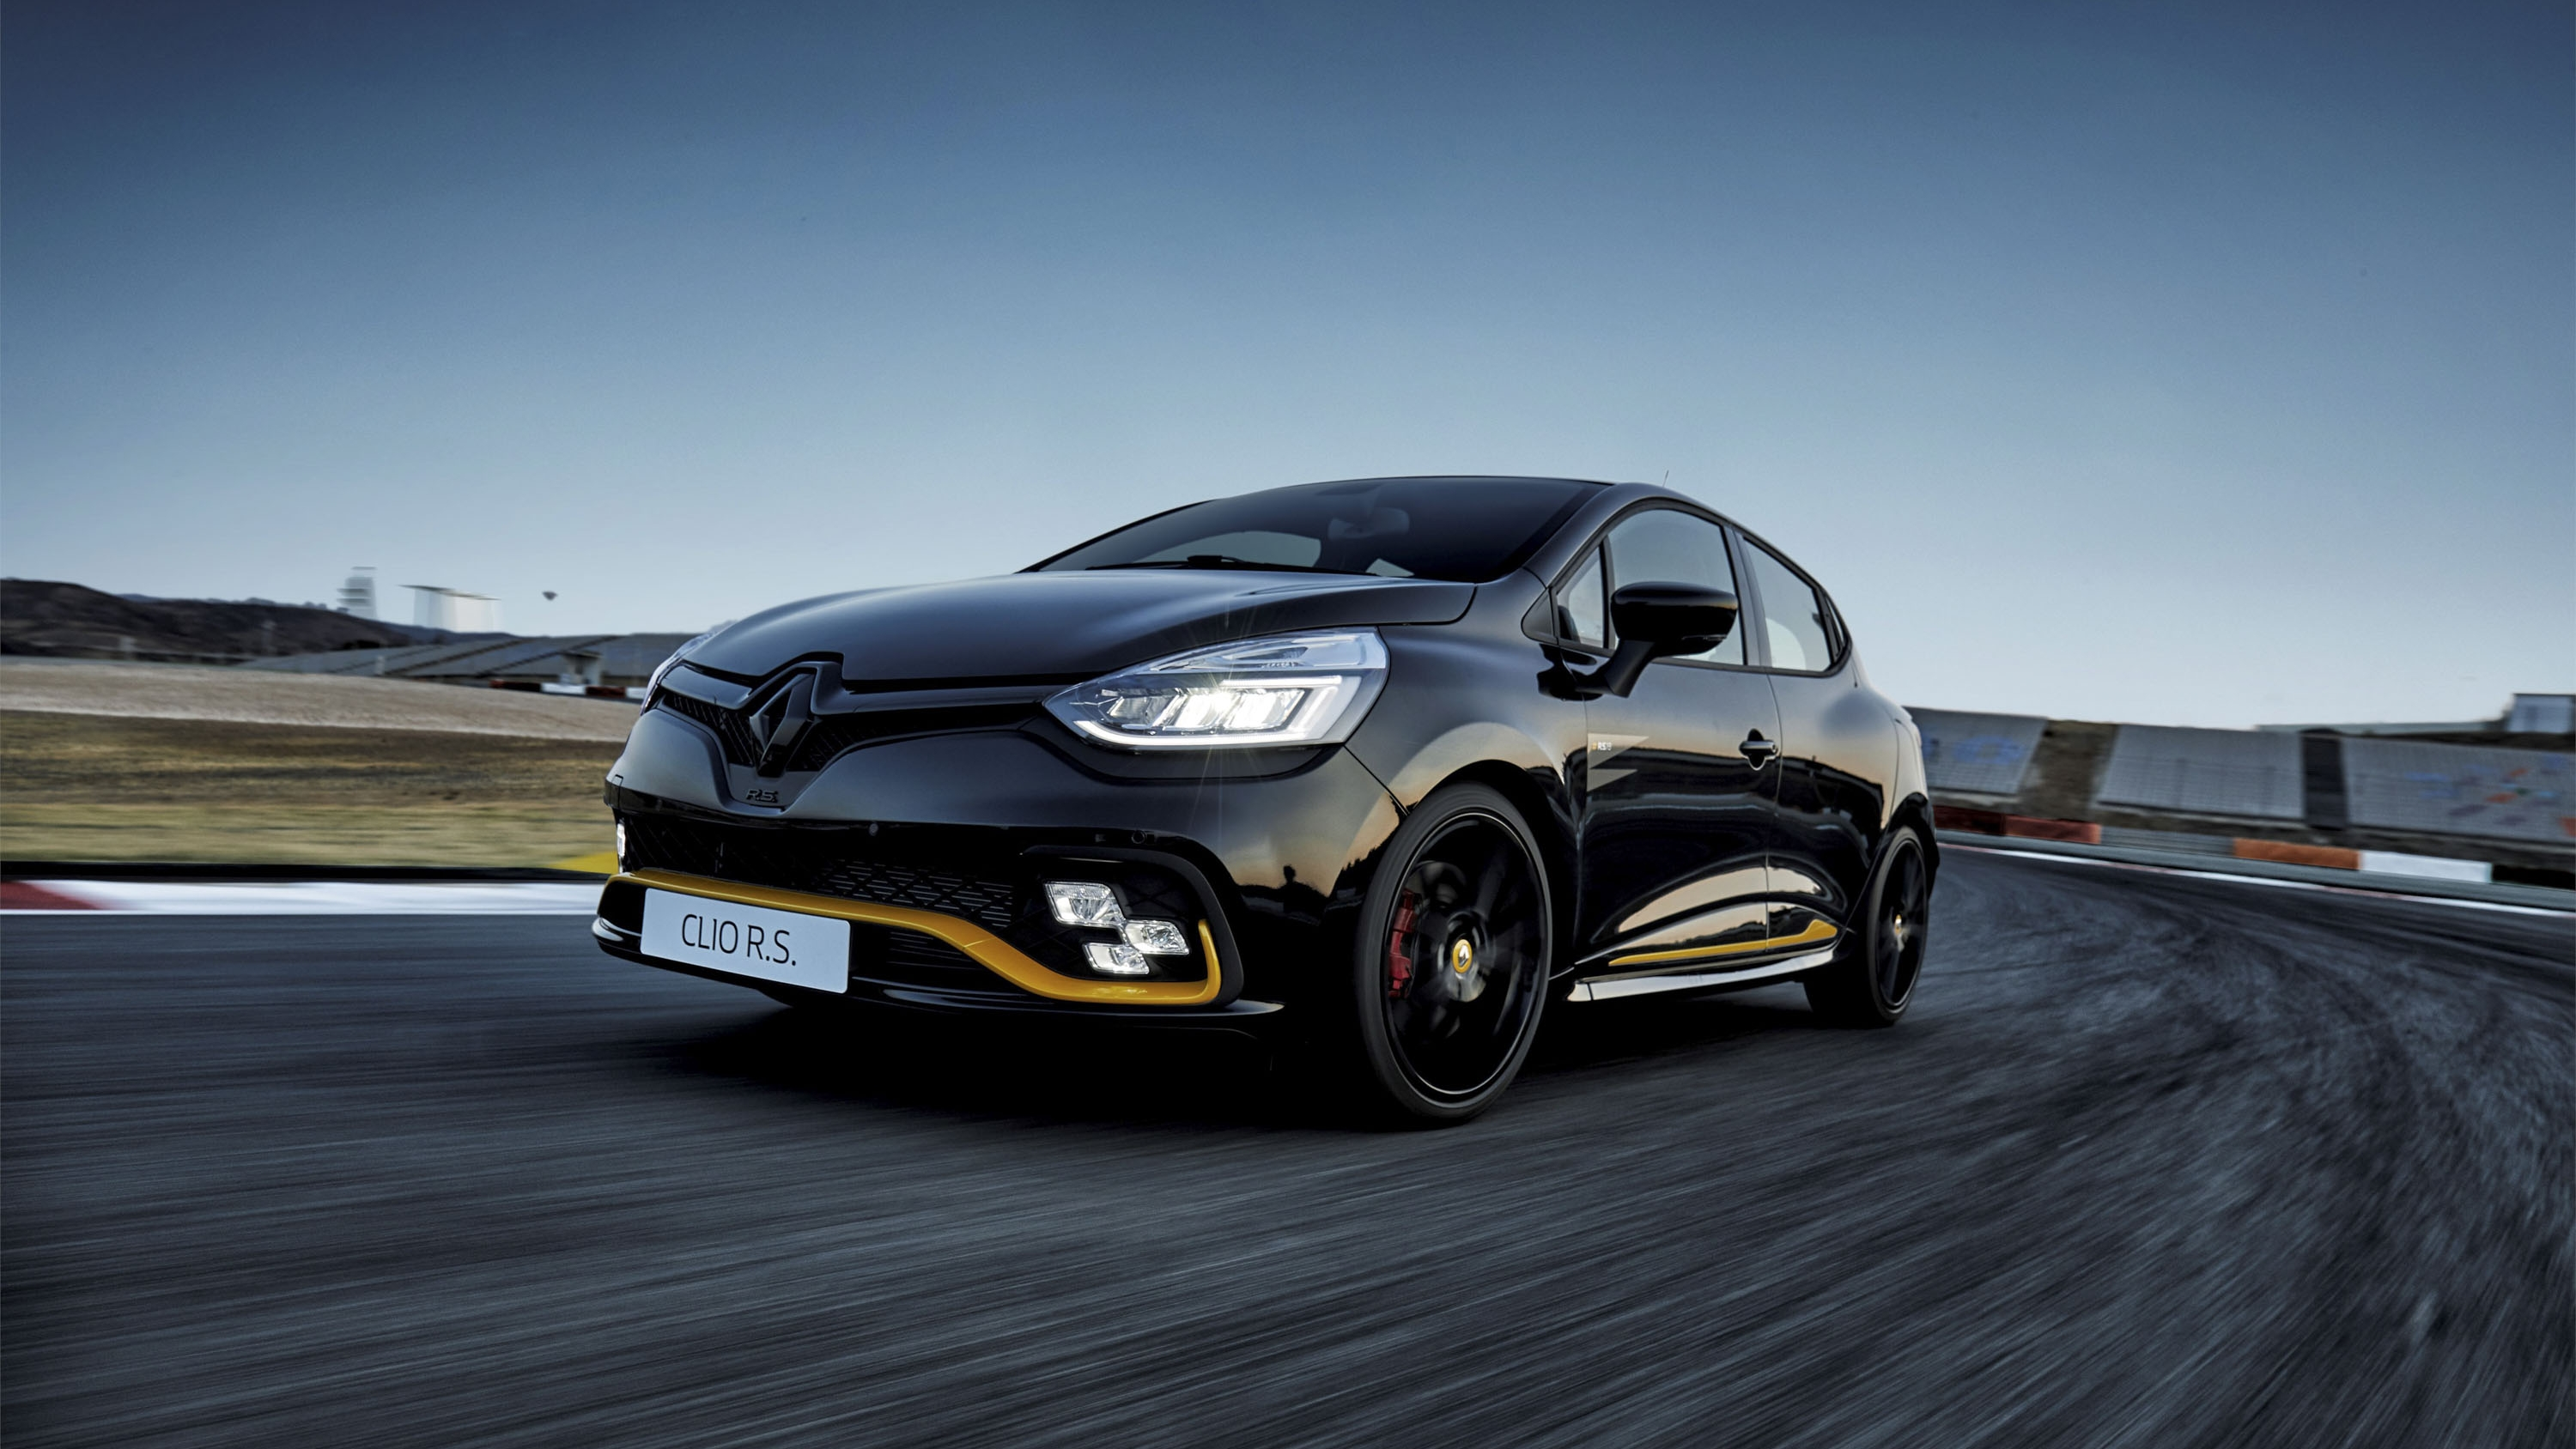 The Next Clio R.S. Could Use Renault's New 1.8-Liter Turbo